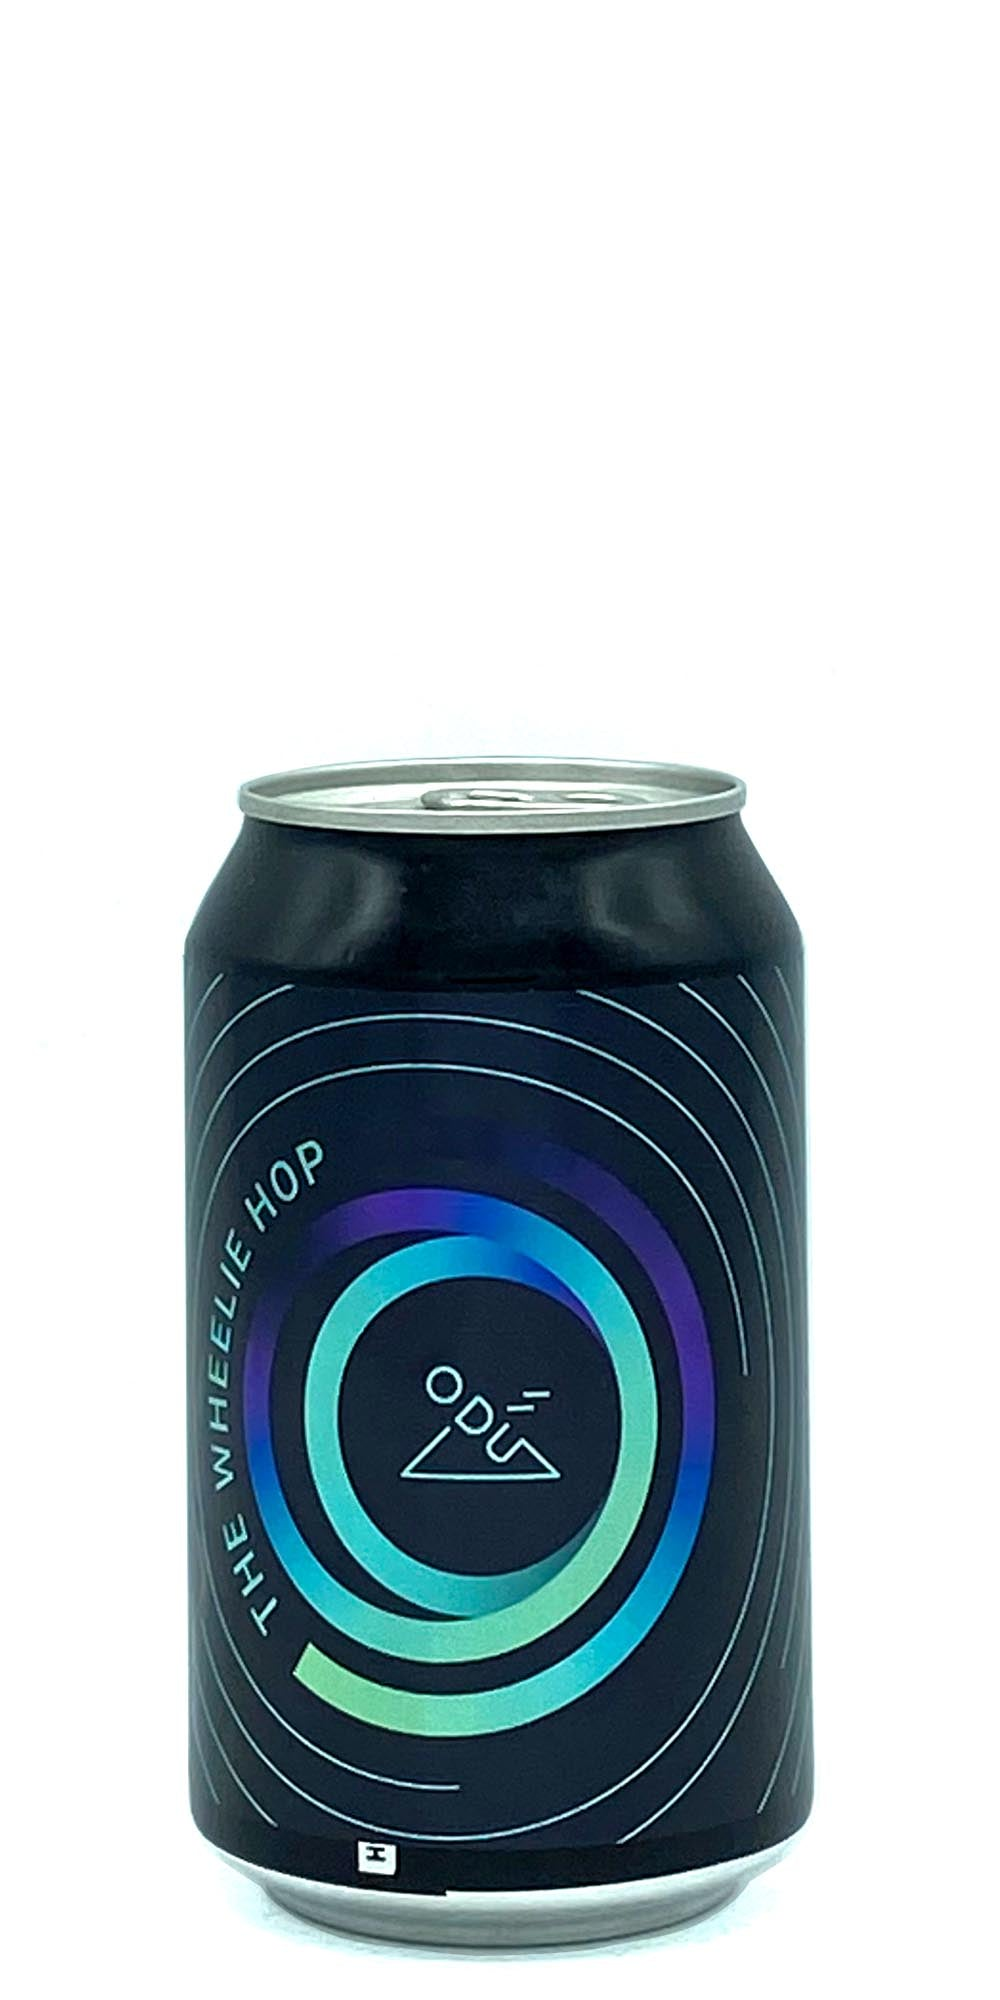 ODU Brewery - The Wheelie Hop - Drikbeer - Order Craft Beer Online